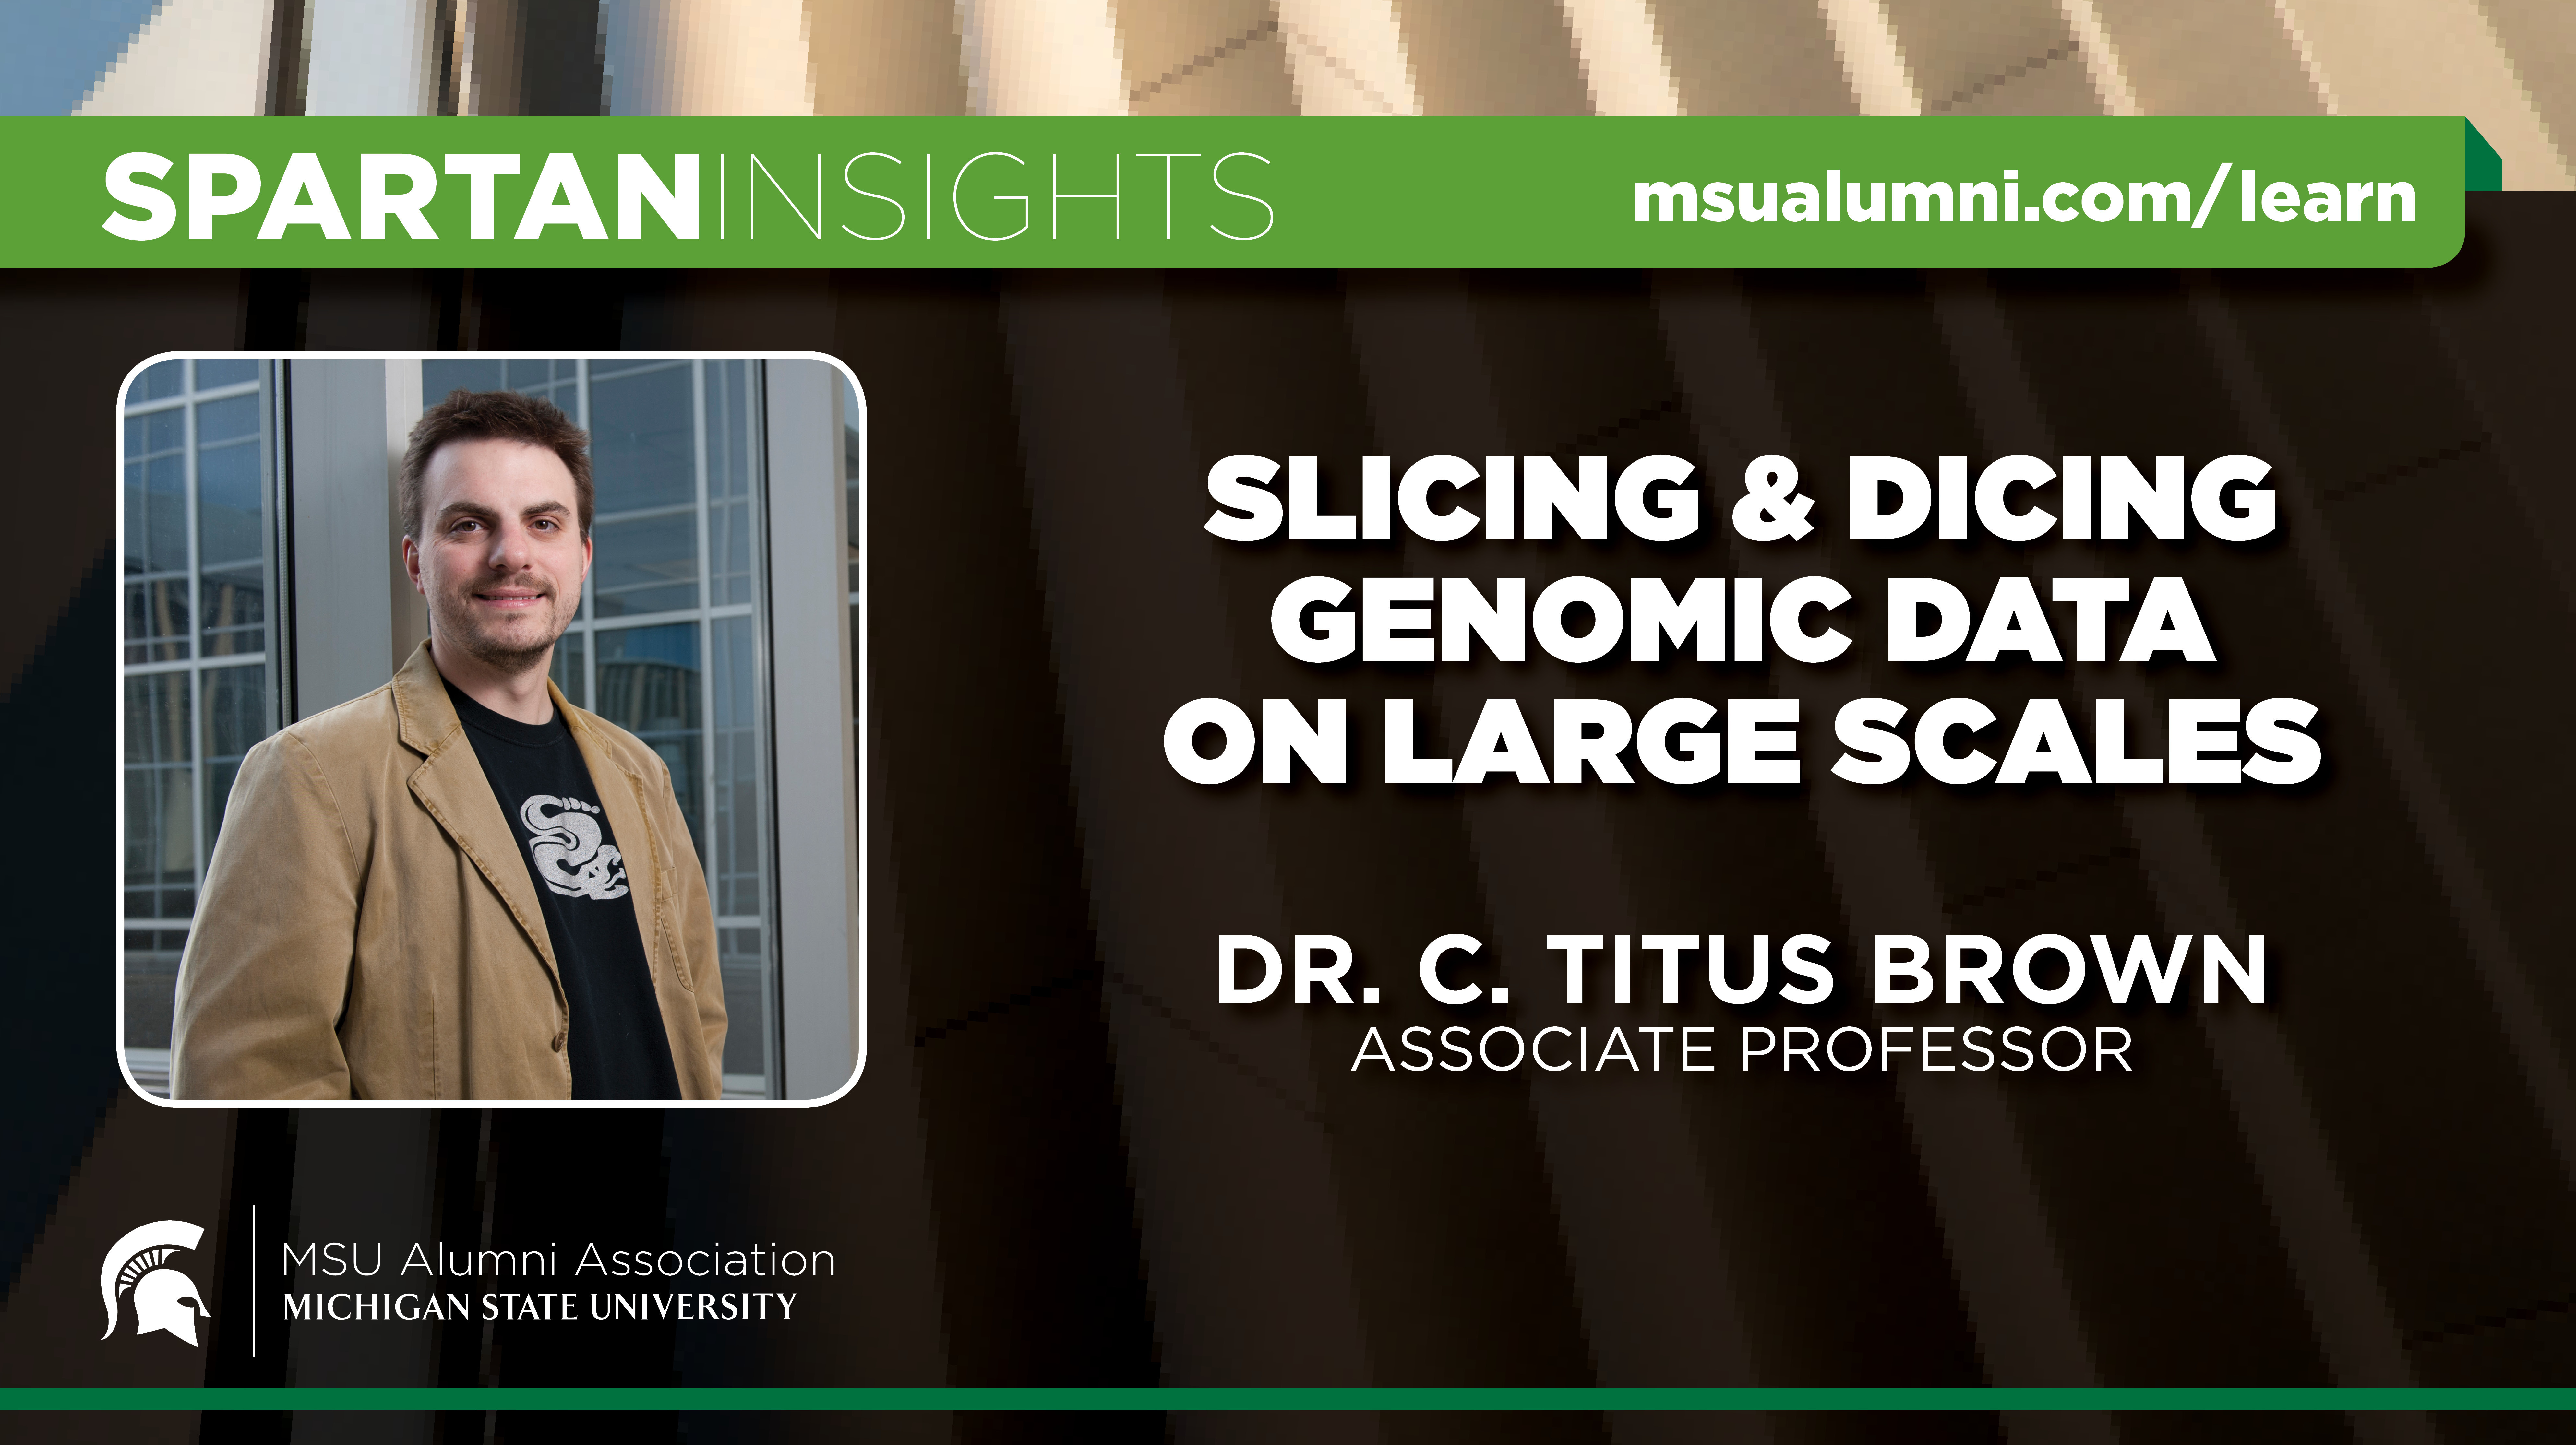 webinar cover image for Dr. C. Titus Brown | Slicing & Dicing Genomic Data On Large Scales